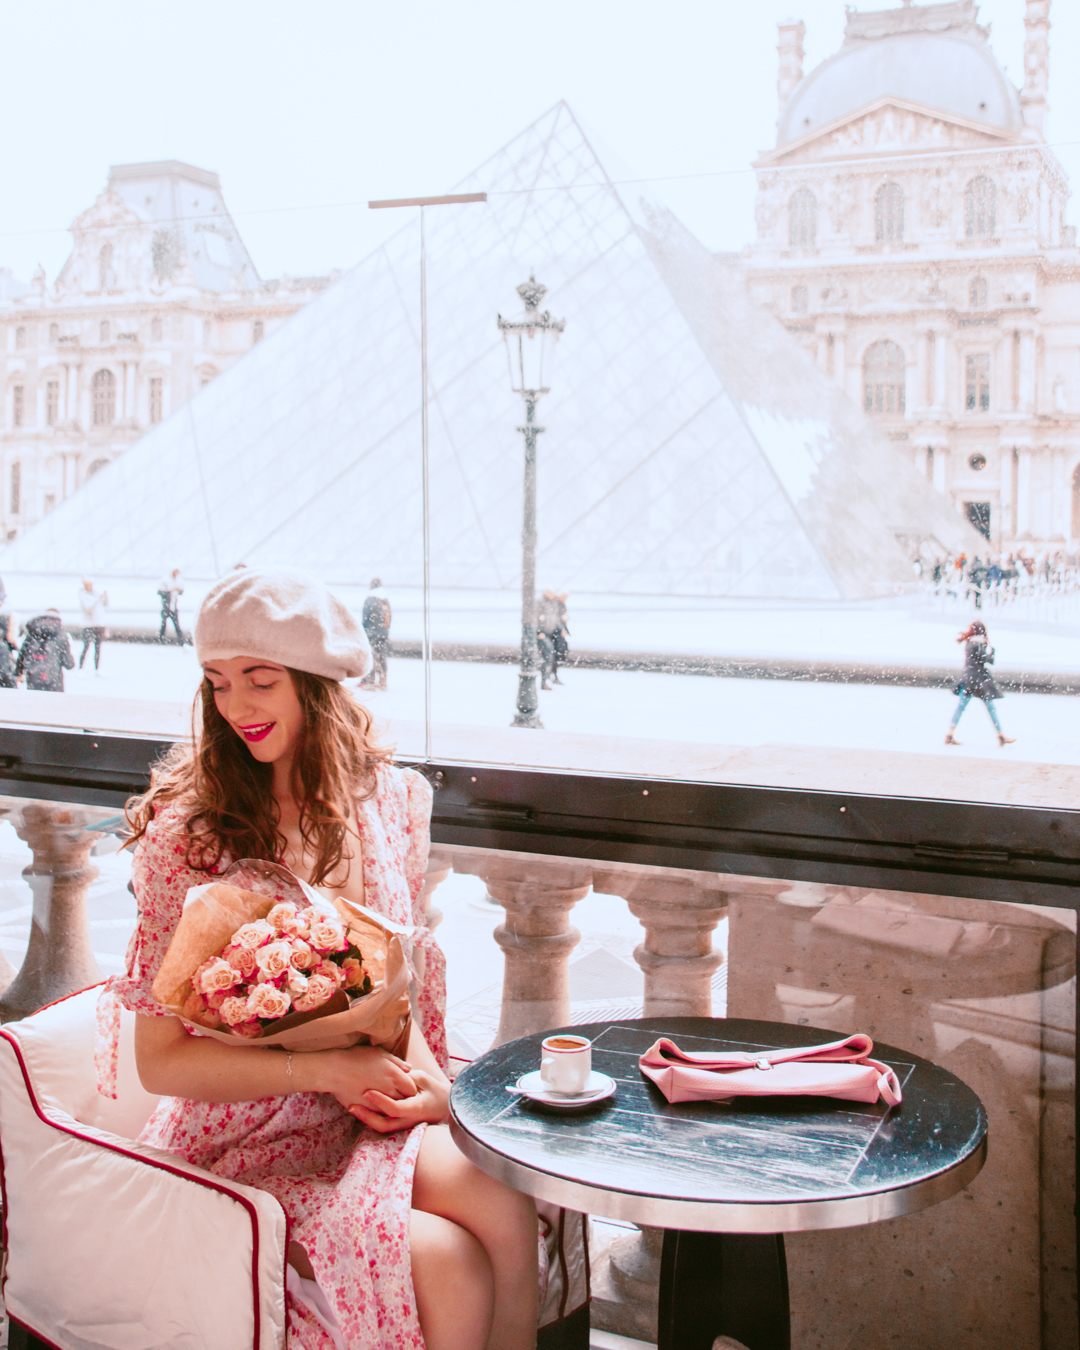 Cafe in front of the Louvre